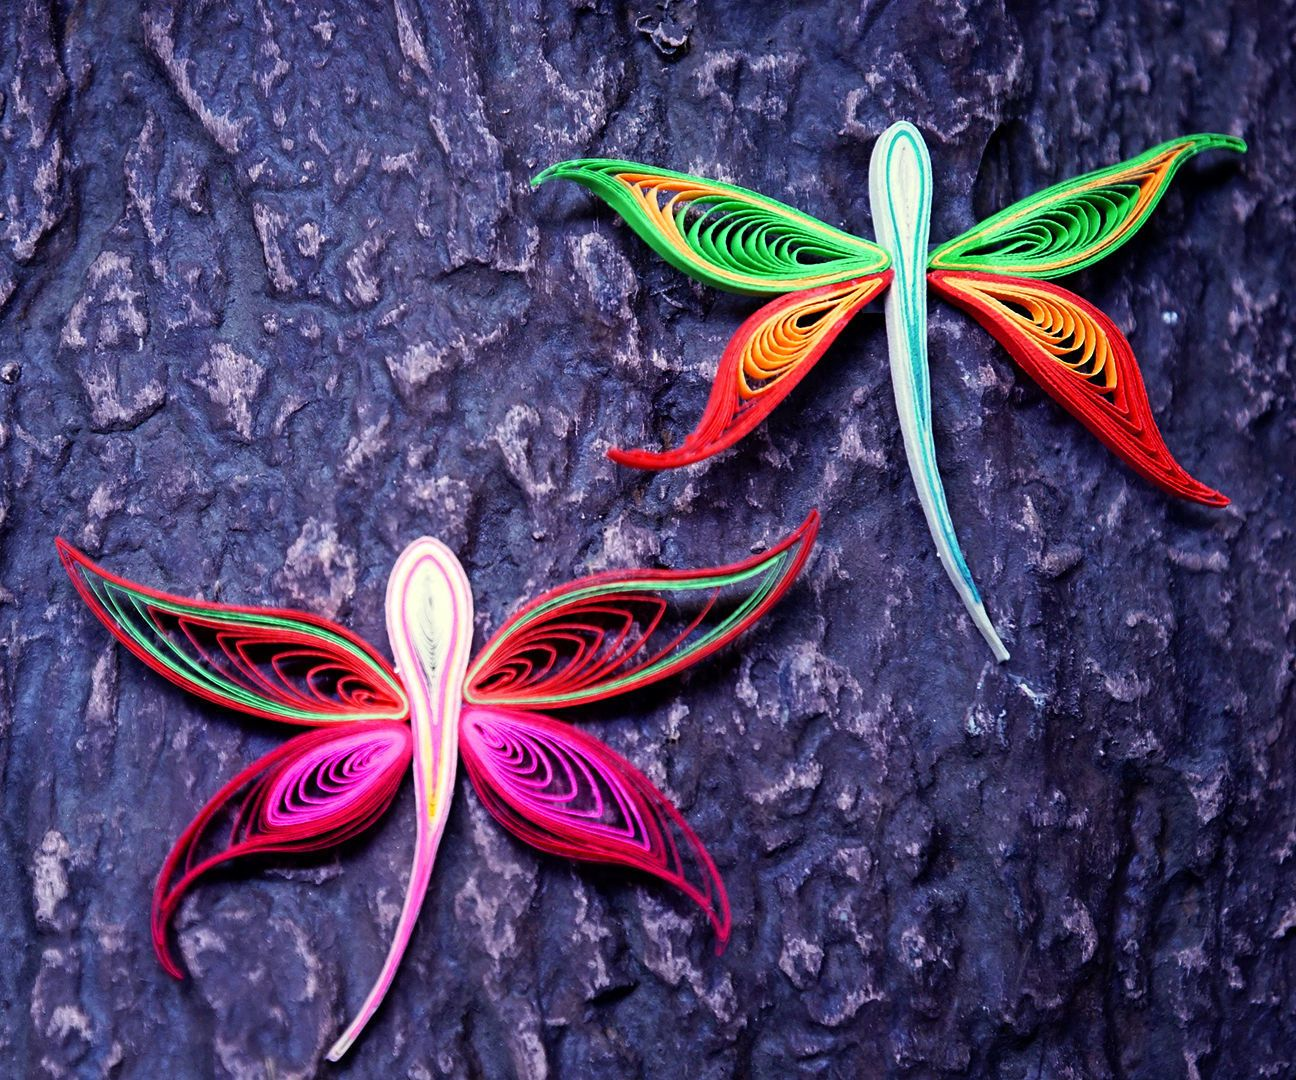 Dragonfly arts and crafts - Pretty Quilled Dragonflies Video Tutorial